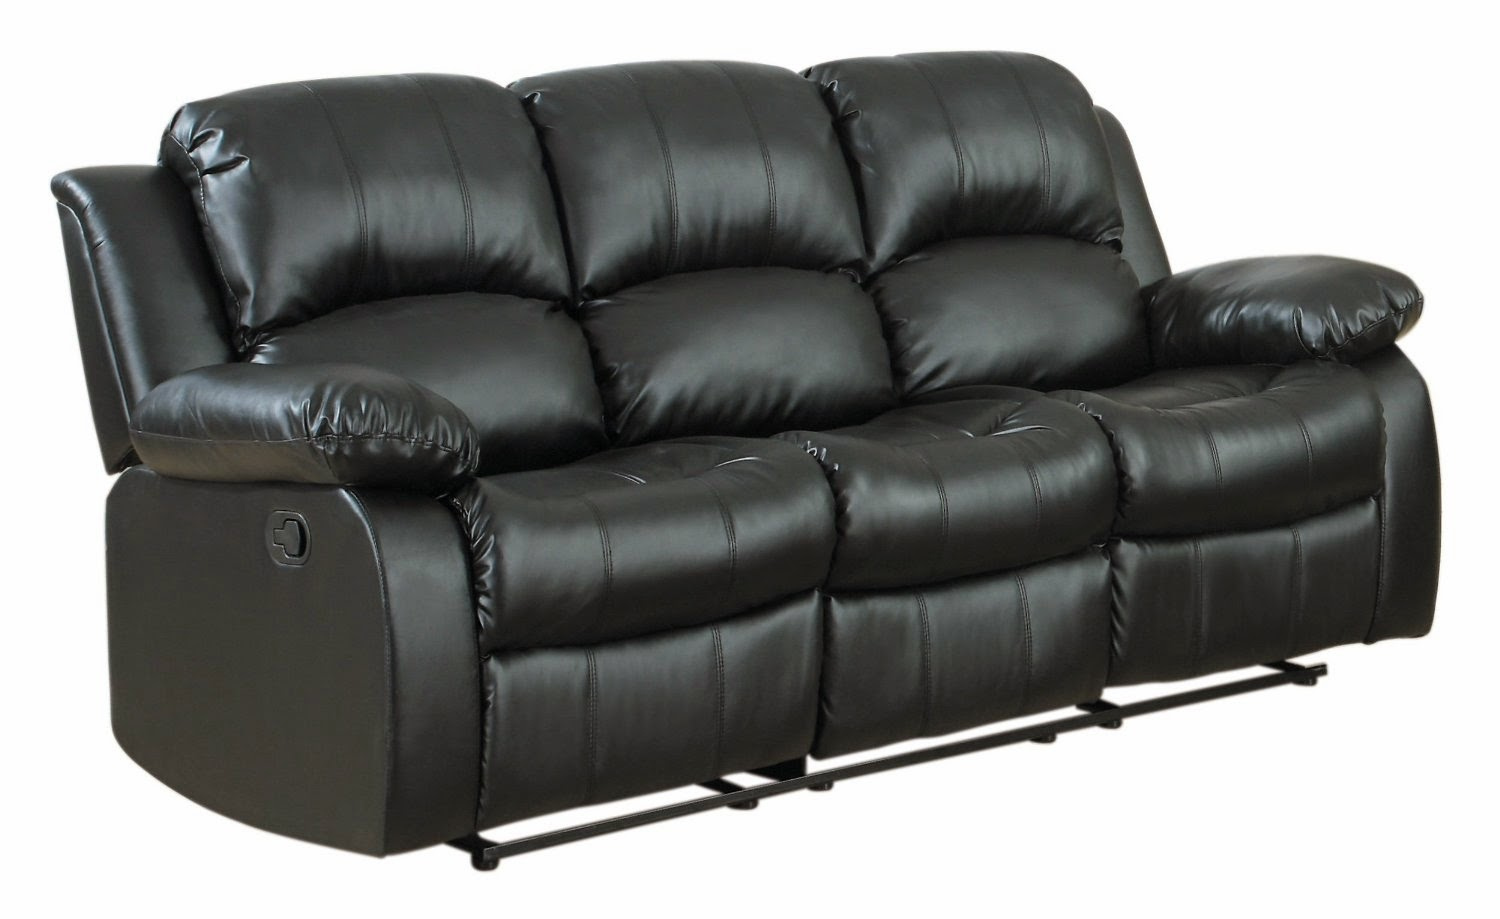 Sofa Brand Recommendation Wanted Cheap Black Leather Recliner Sofas